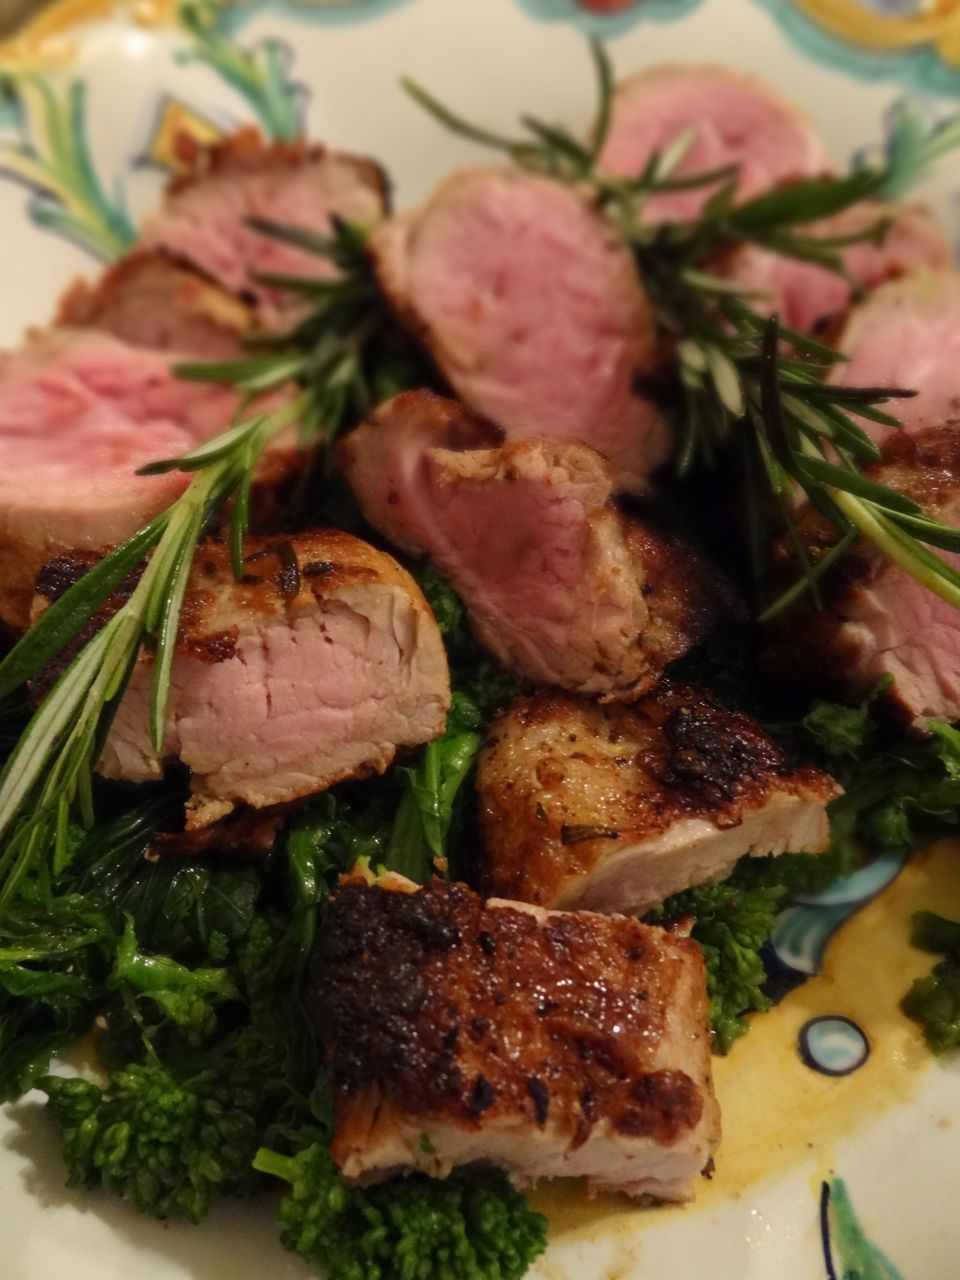 ... Pork Tenderloin served over Steamed Rapini and garnished with rosemary